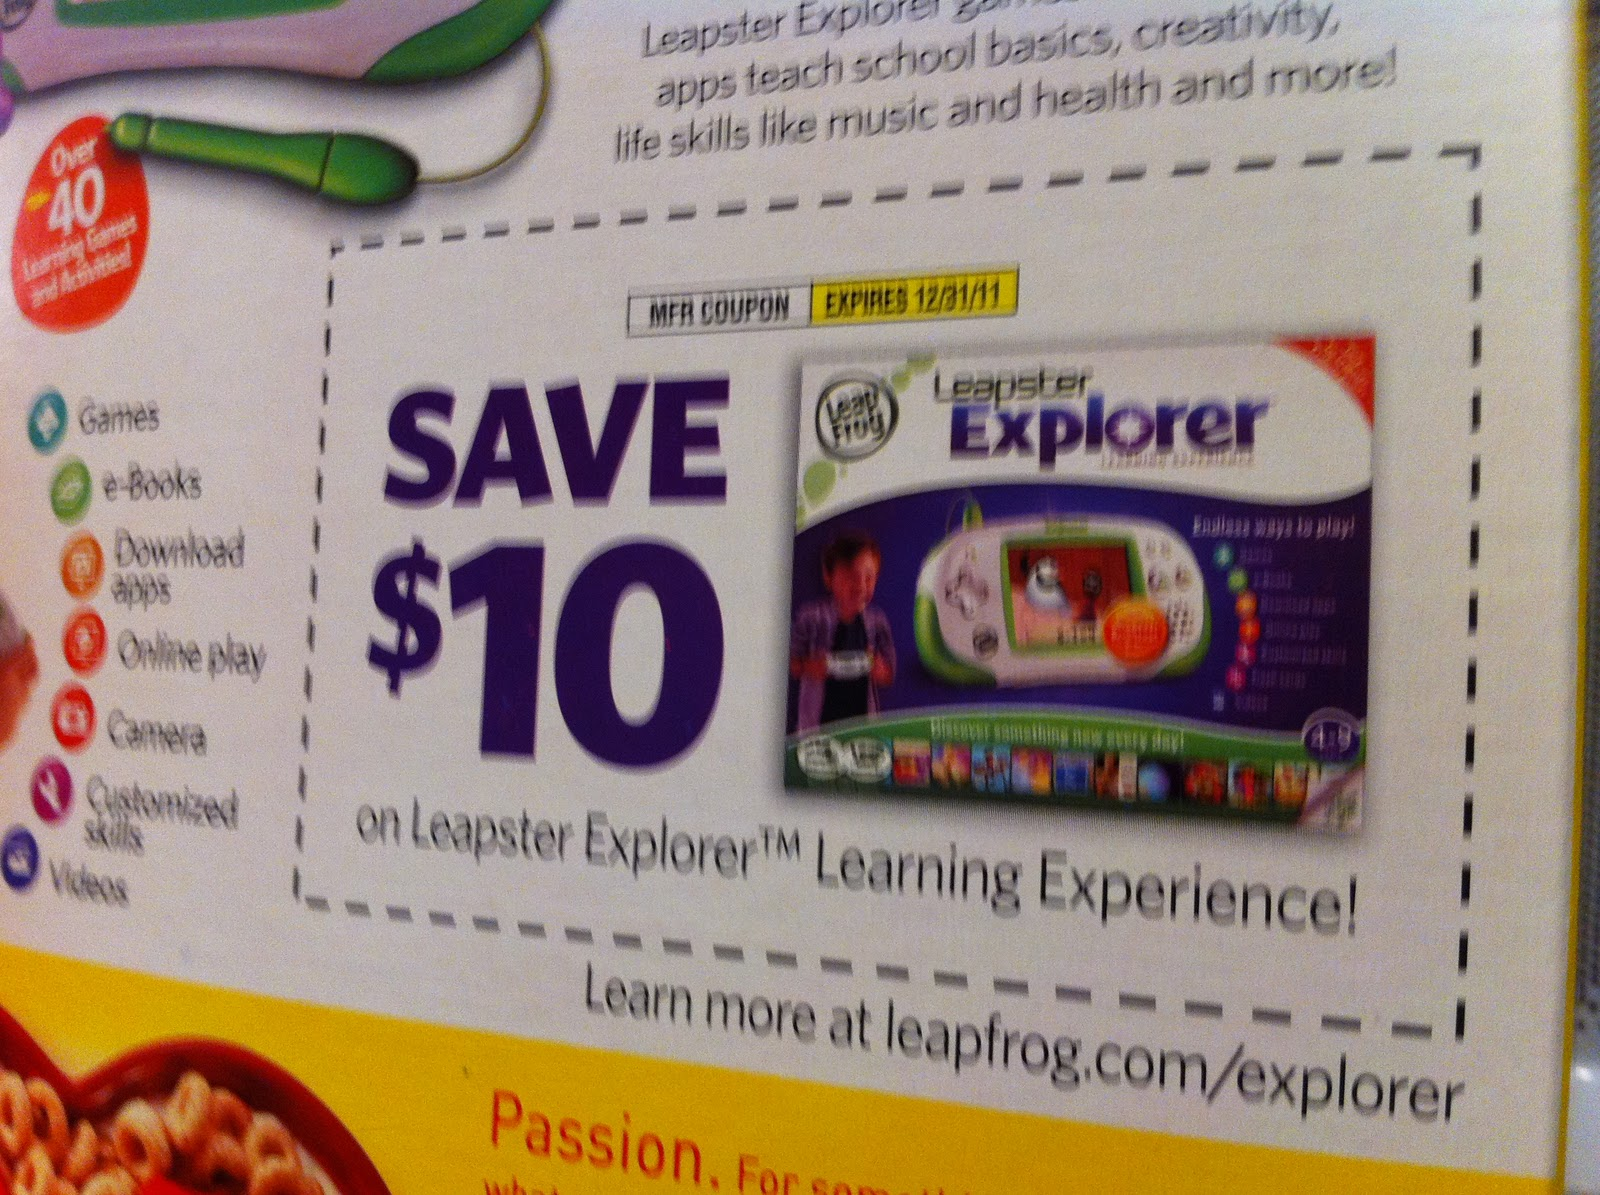 Leapfrog coupon code